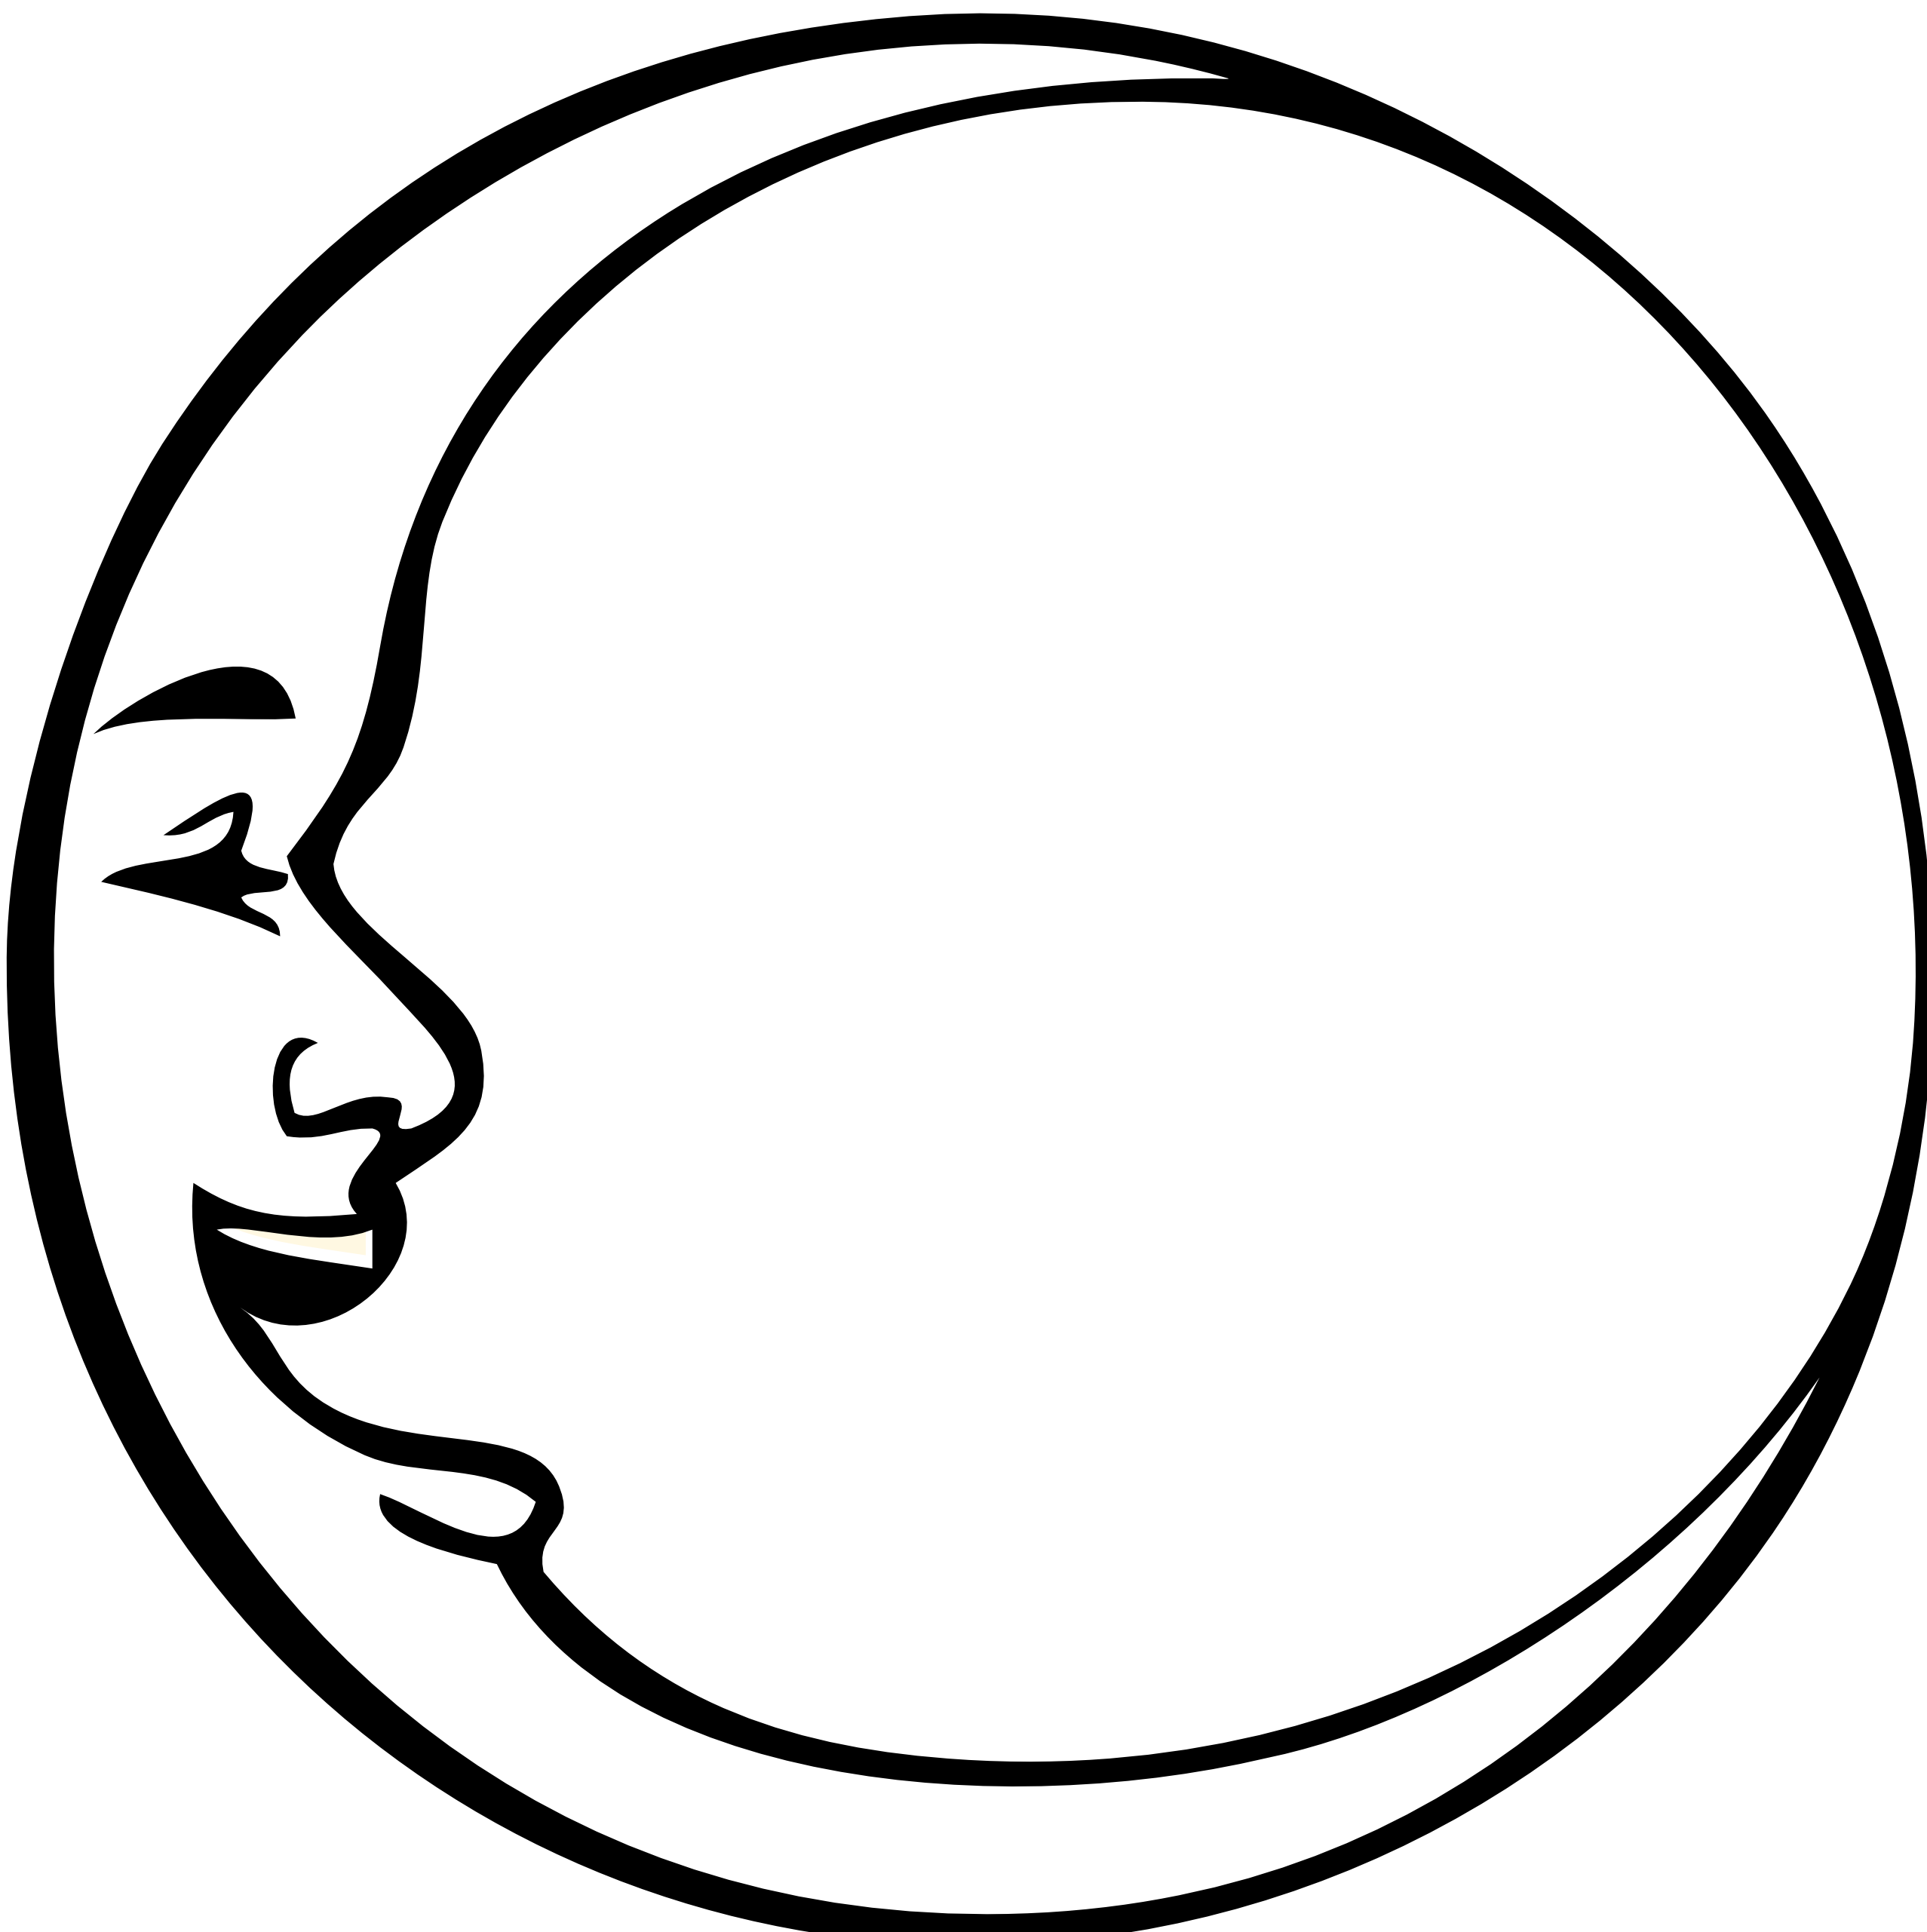 Line Drawing Moon : Outline the moon clipart best